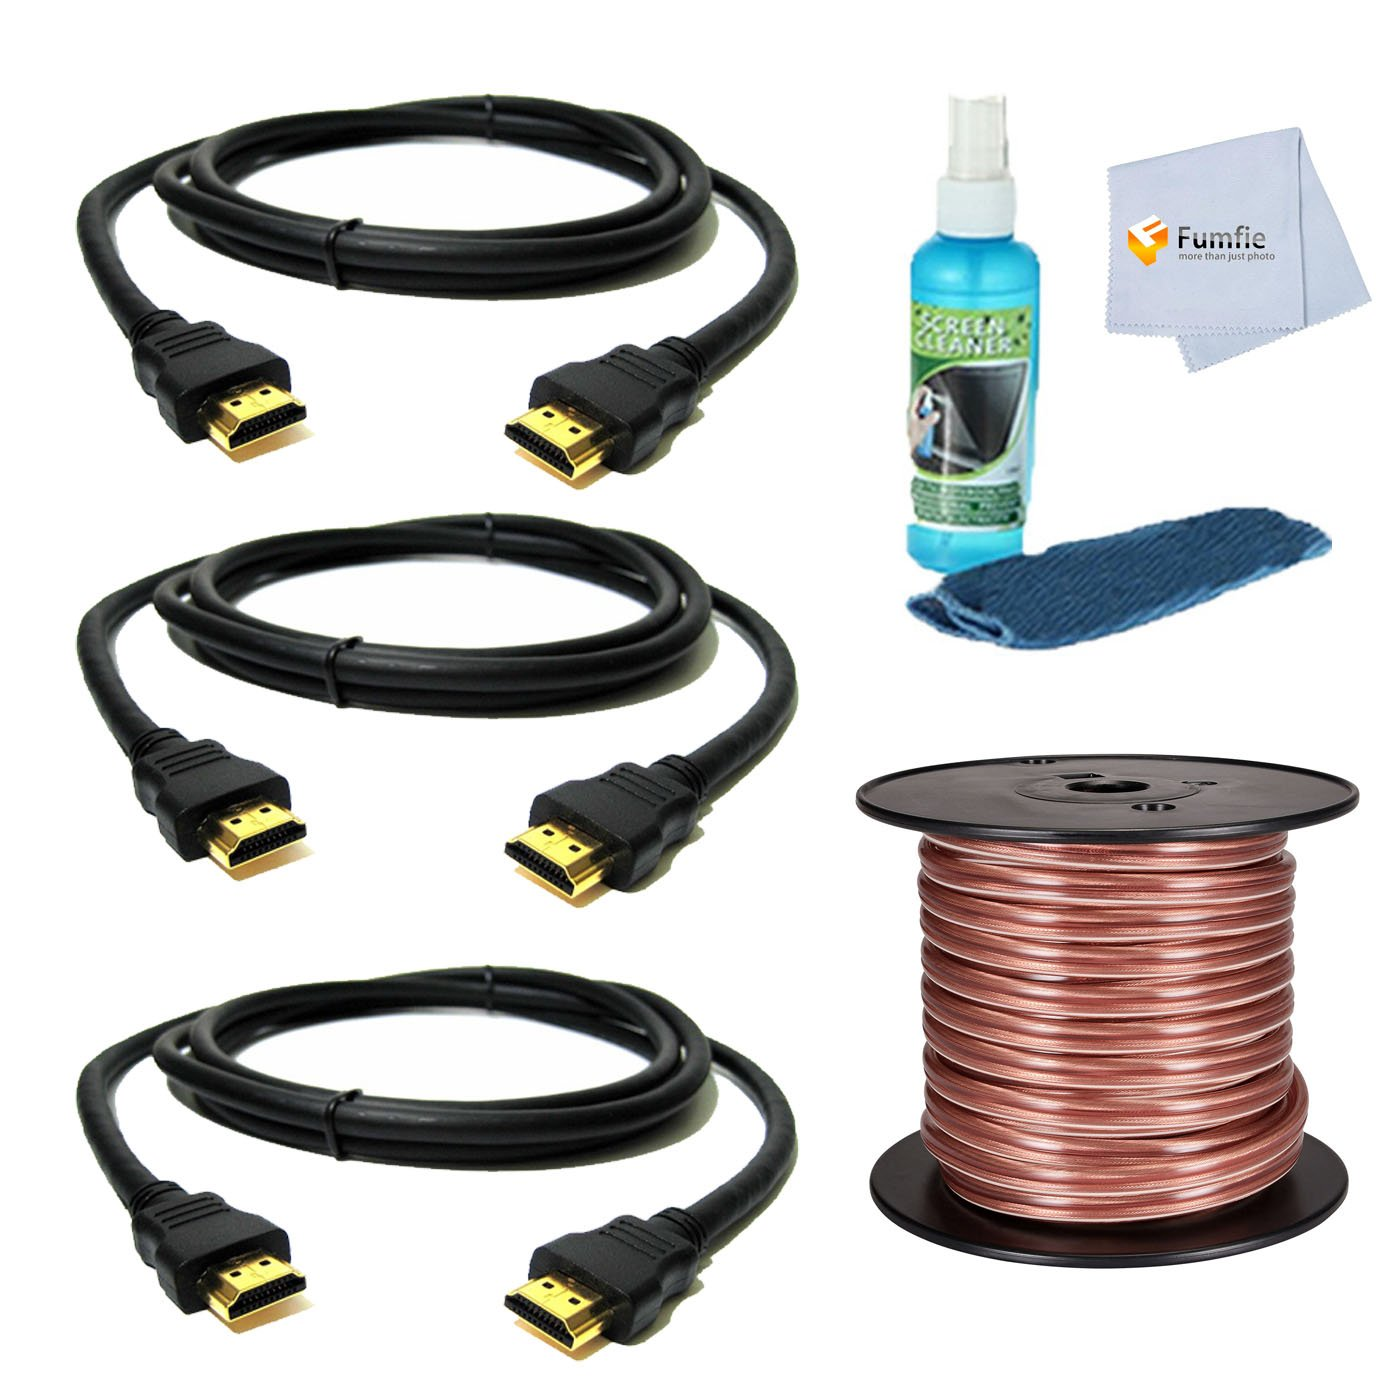 Accessory Kit for Denon, Onkyo, Yamaha, Sony, Pioneer Receivers Includes: 50ft Speaker Wire + 3 HDMI Cables + Home Theater TV Cleaning Cloth by Fumfie